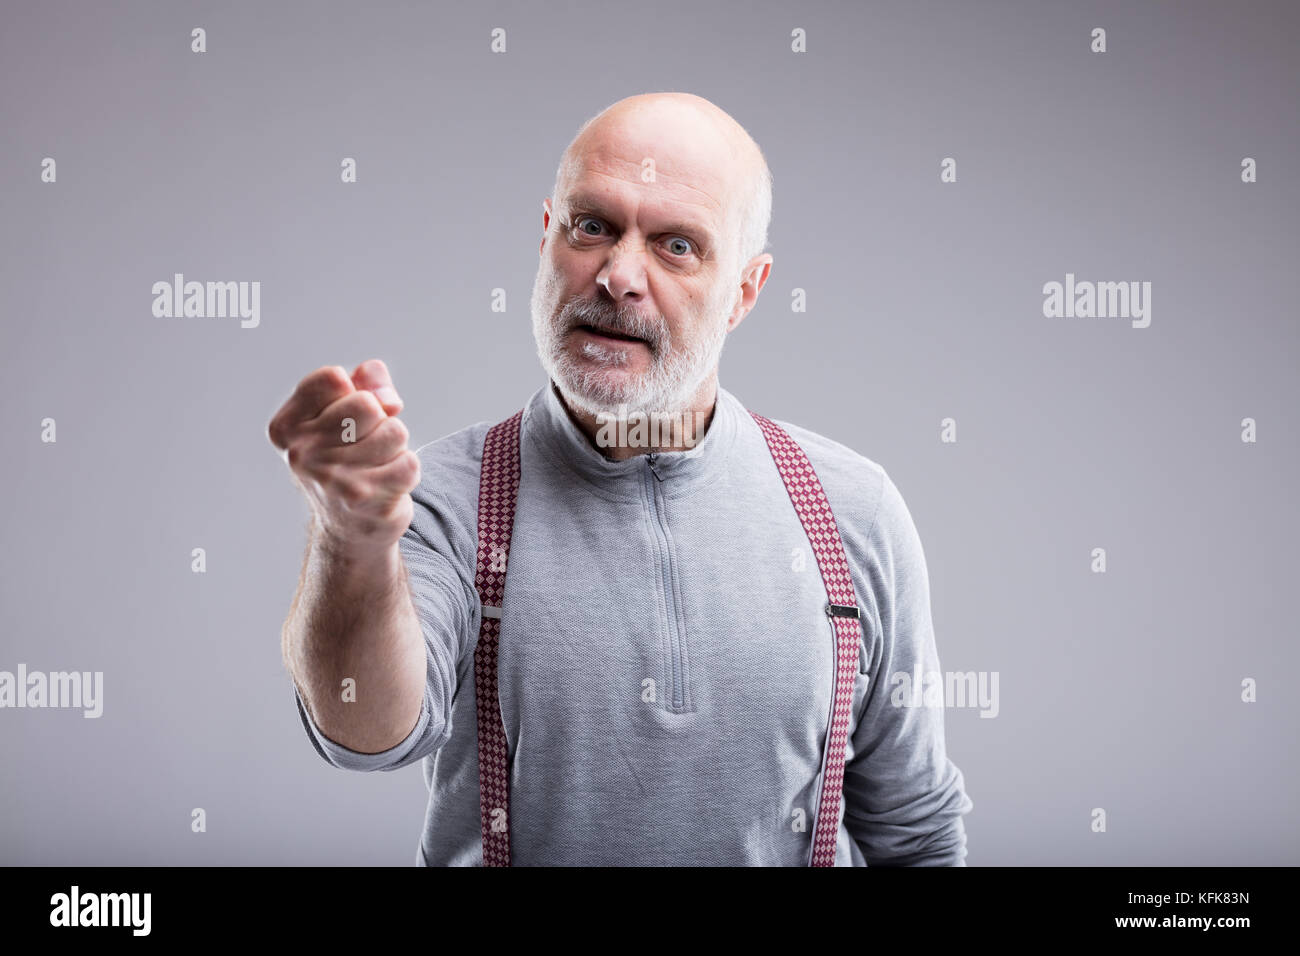 Angry Old Man High Resolution Stock Photography And Images Alamy